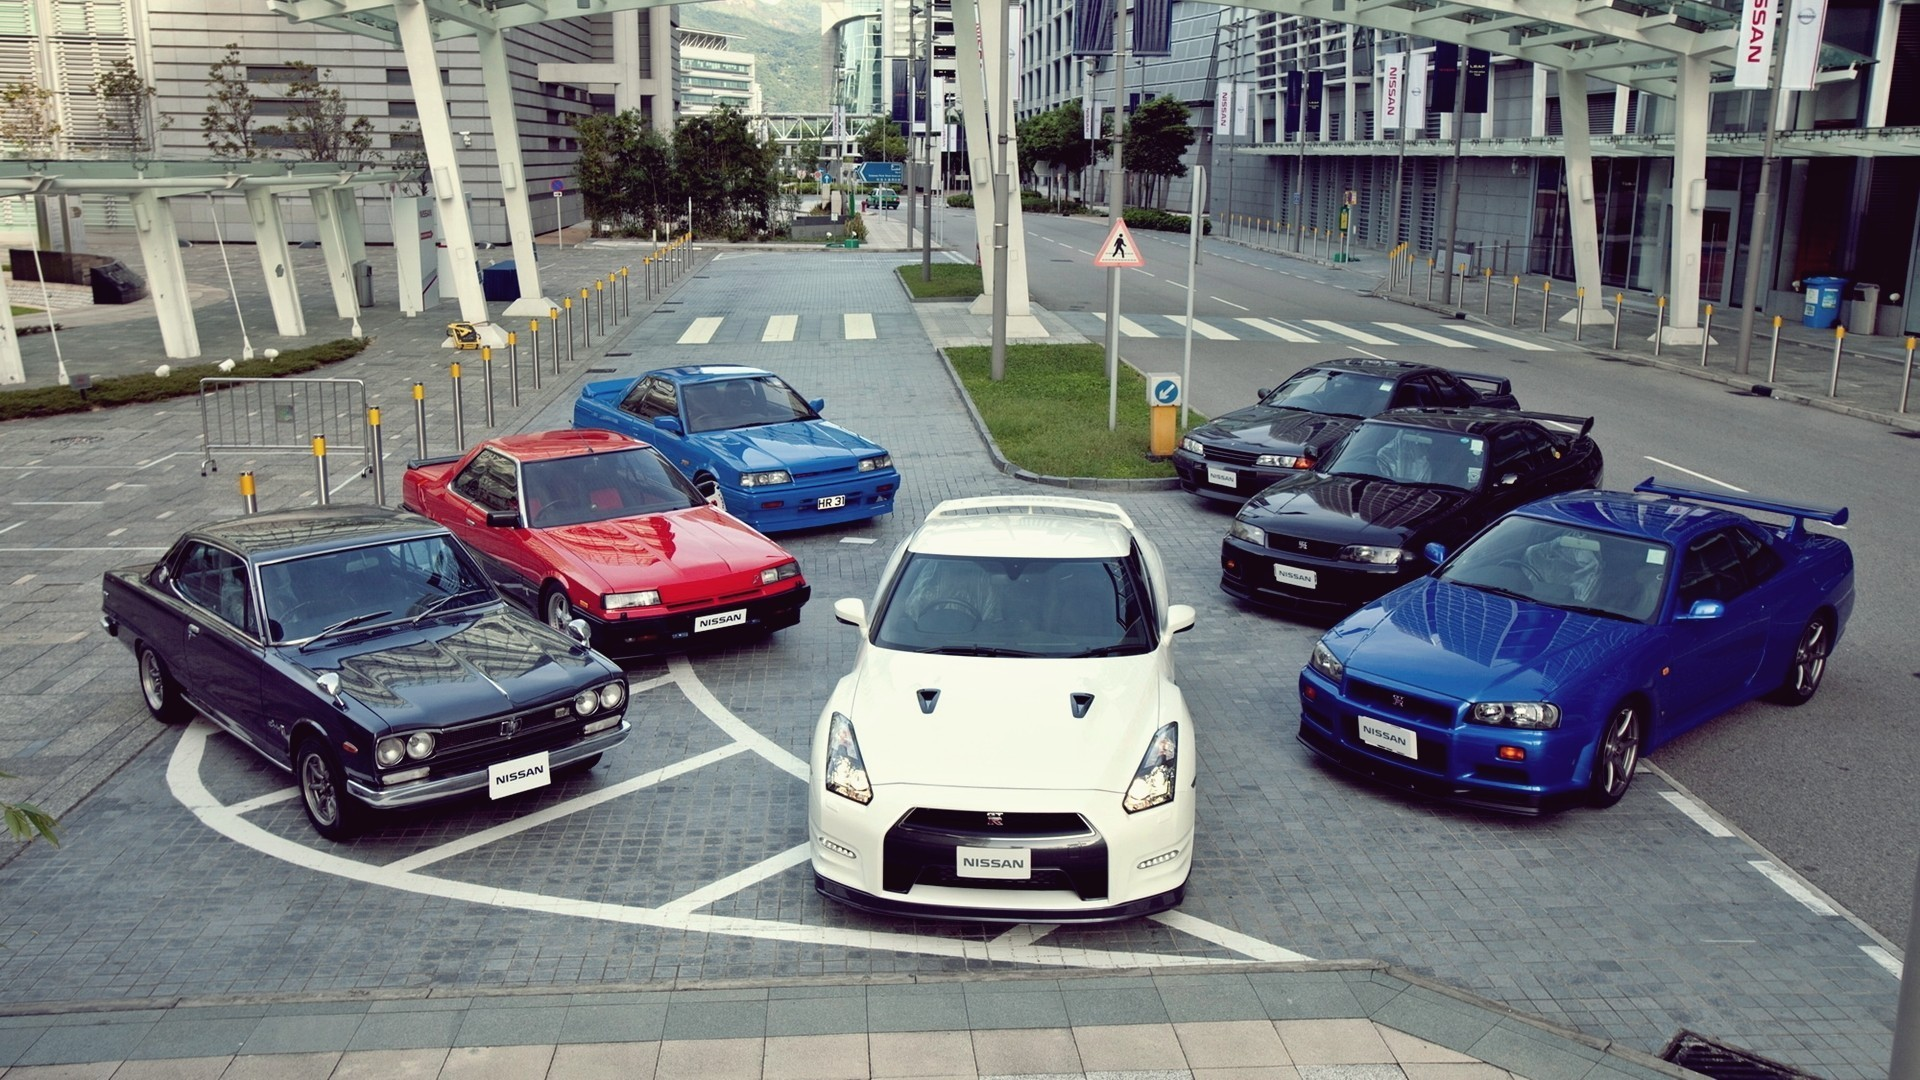 Res: 1920x1080, nissan nissan skyline nissan gt r r32 nissan skyline gt r r33 nissan  skyline gt r r34 nissan gtr wallpaper and background